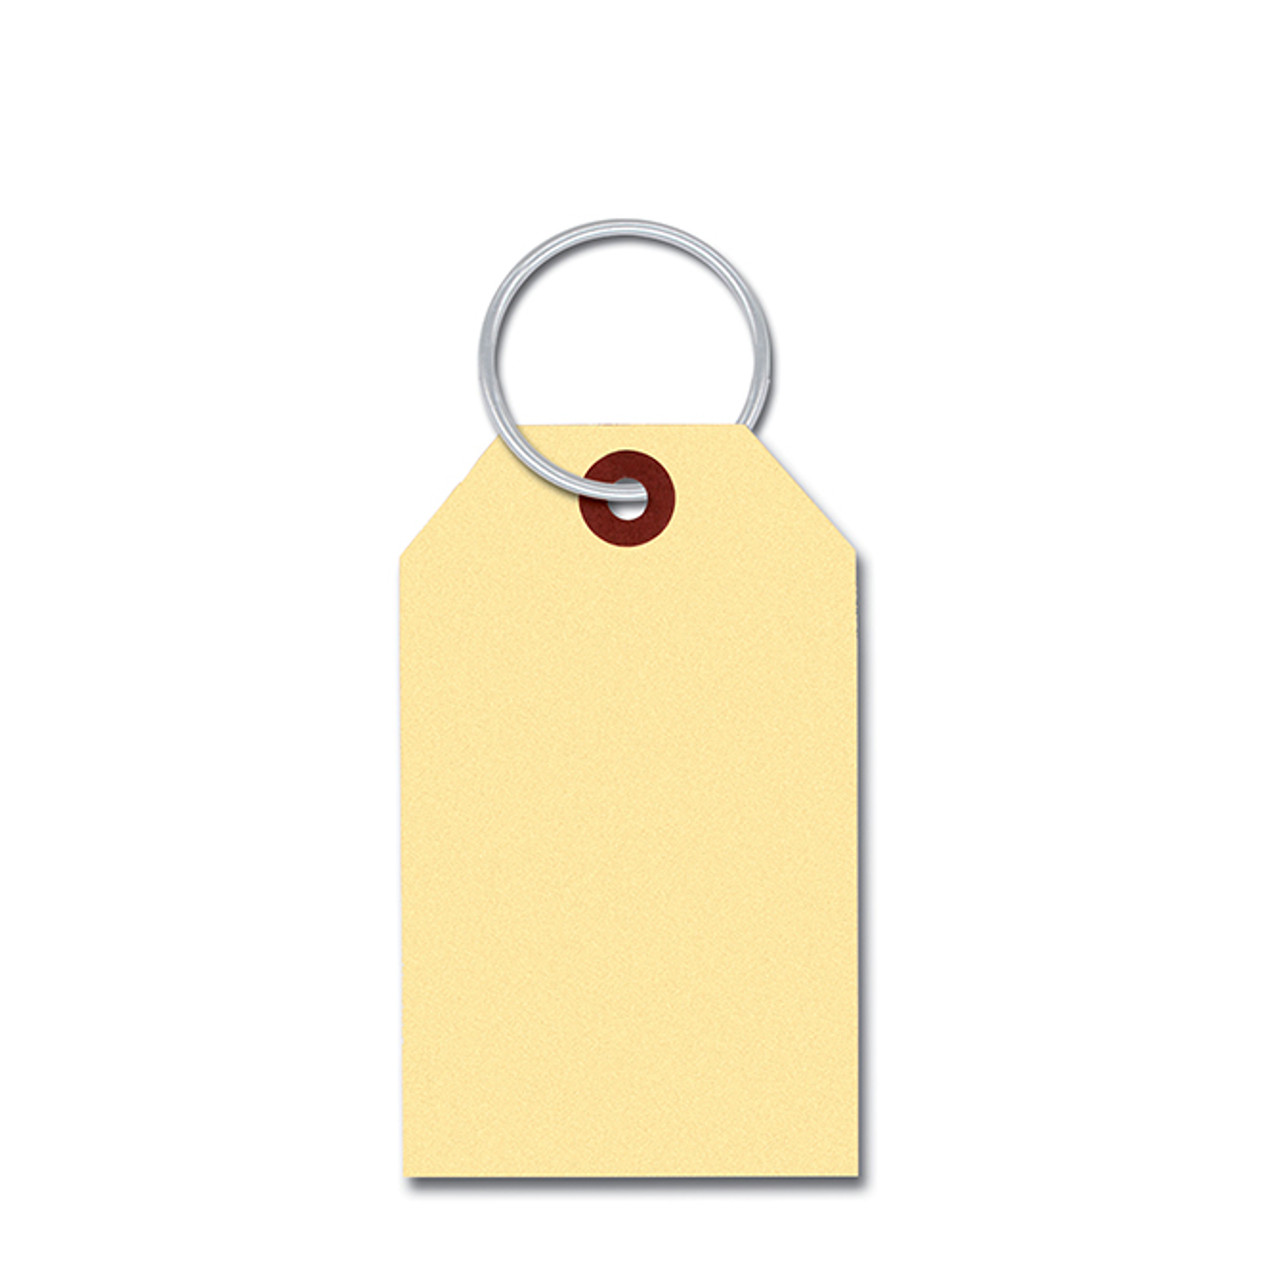 Manila Key Tag with Inserted Ring (Form-#152)